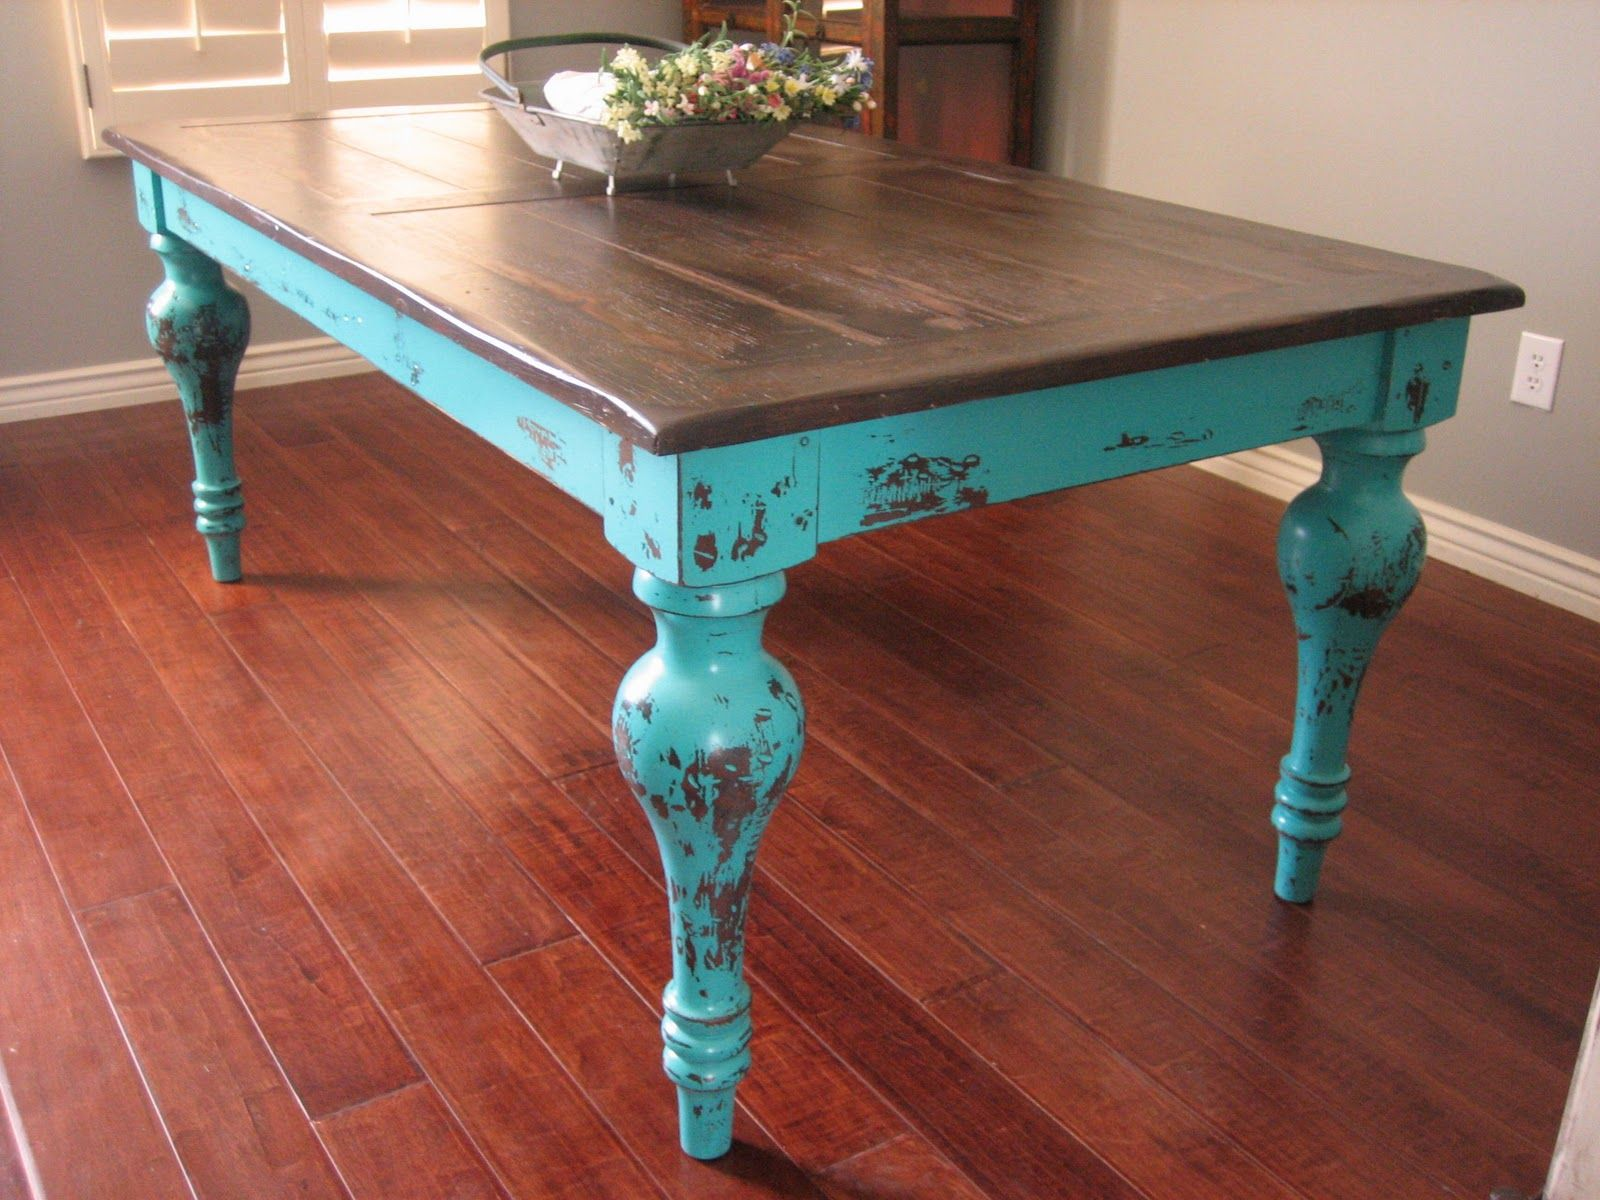 Rustic Dining Table. Inspiration For My Dining Table Re Do!  #europeanpaintfinishes